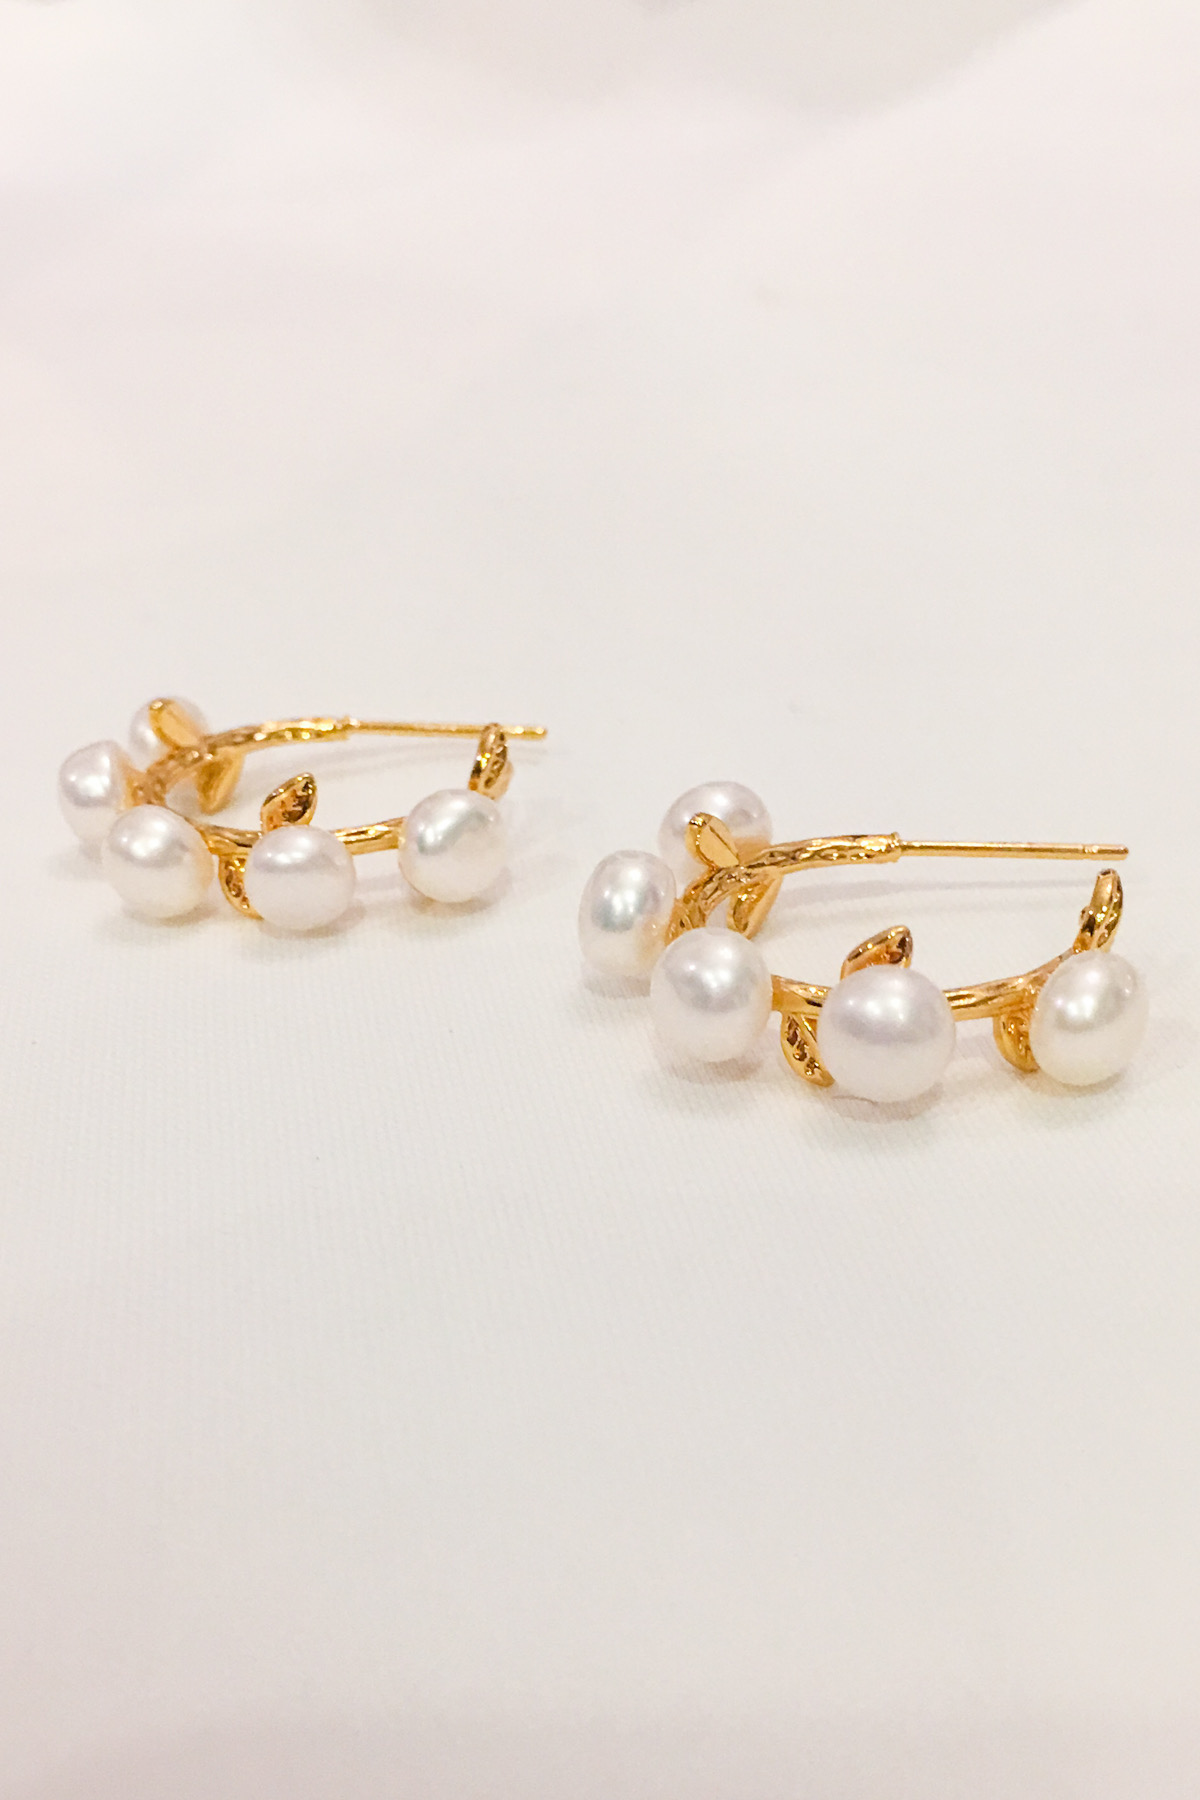 SKYE San Francisco Shop SF Chic Modern Elegant Classy Women Jewelry French Parisian Minimalist Clarice 18K Gold Pearl Hoop Earrings 4